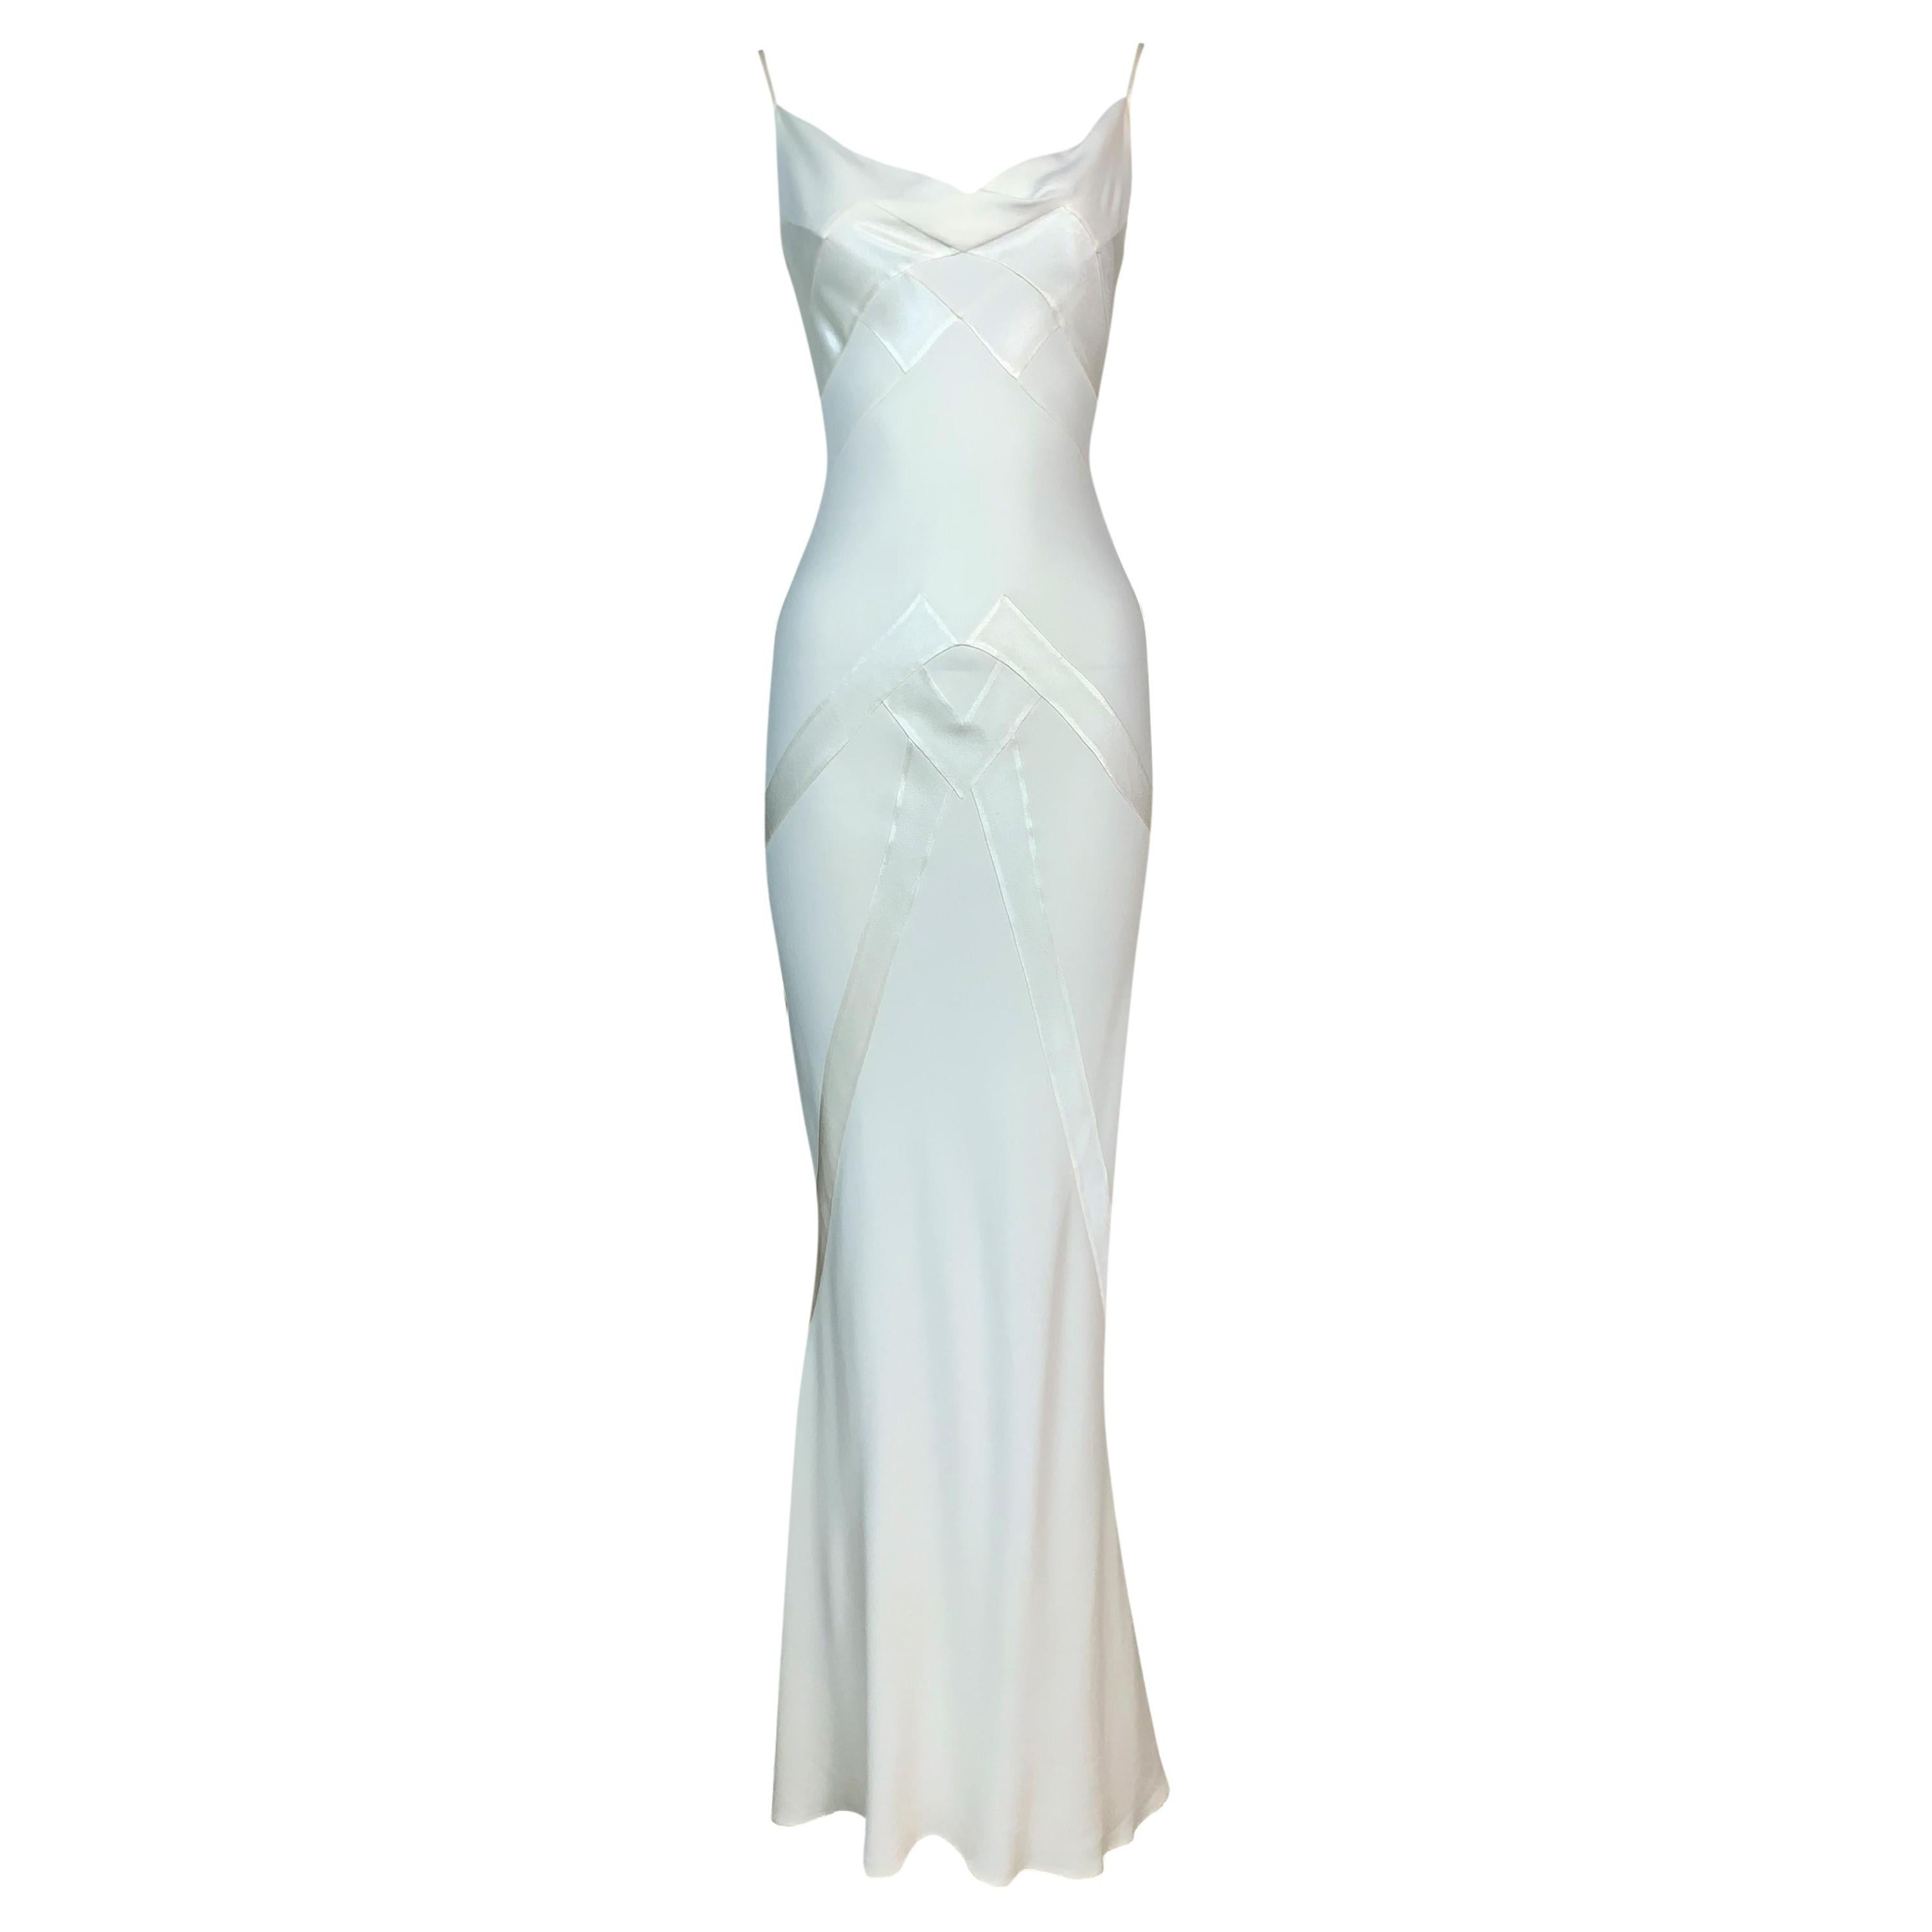 S/S 1998 Christian Dior by John Galliano Ivory Satin Gown Dress